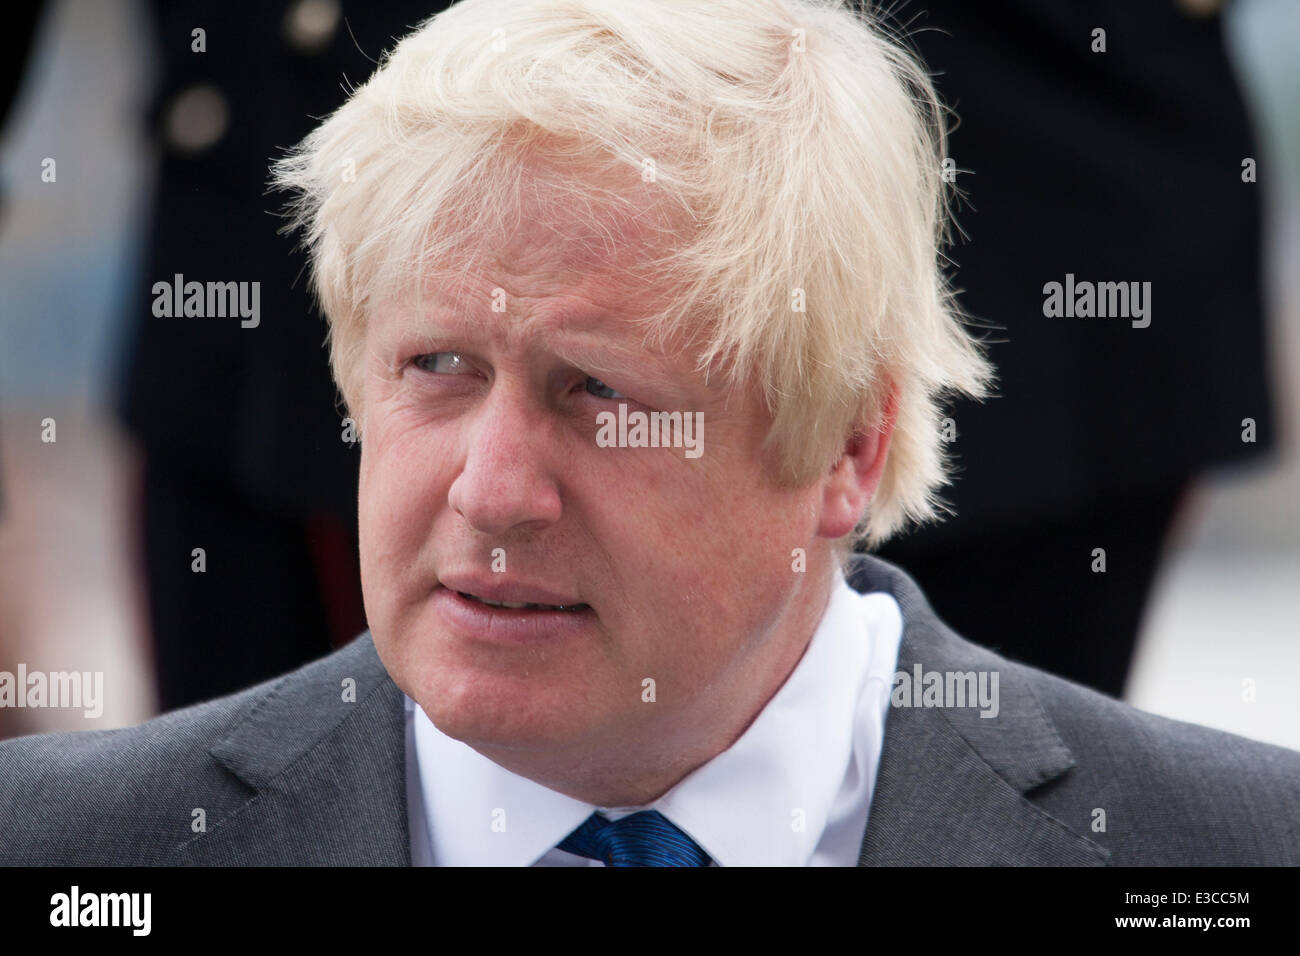 London, UK. 23rd June, 2014. Mayor Boris Johnson listens to speakers as members and veterans of the armed forces - Stock Image